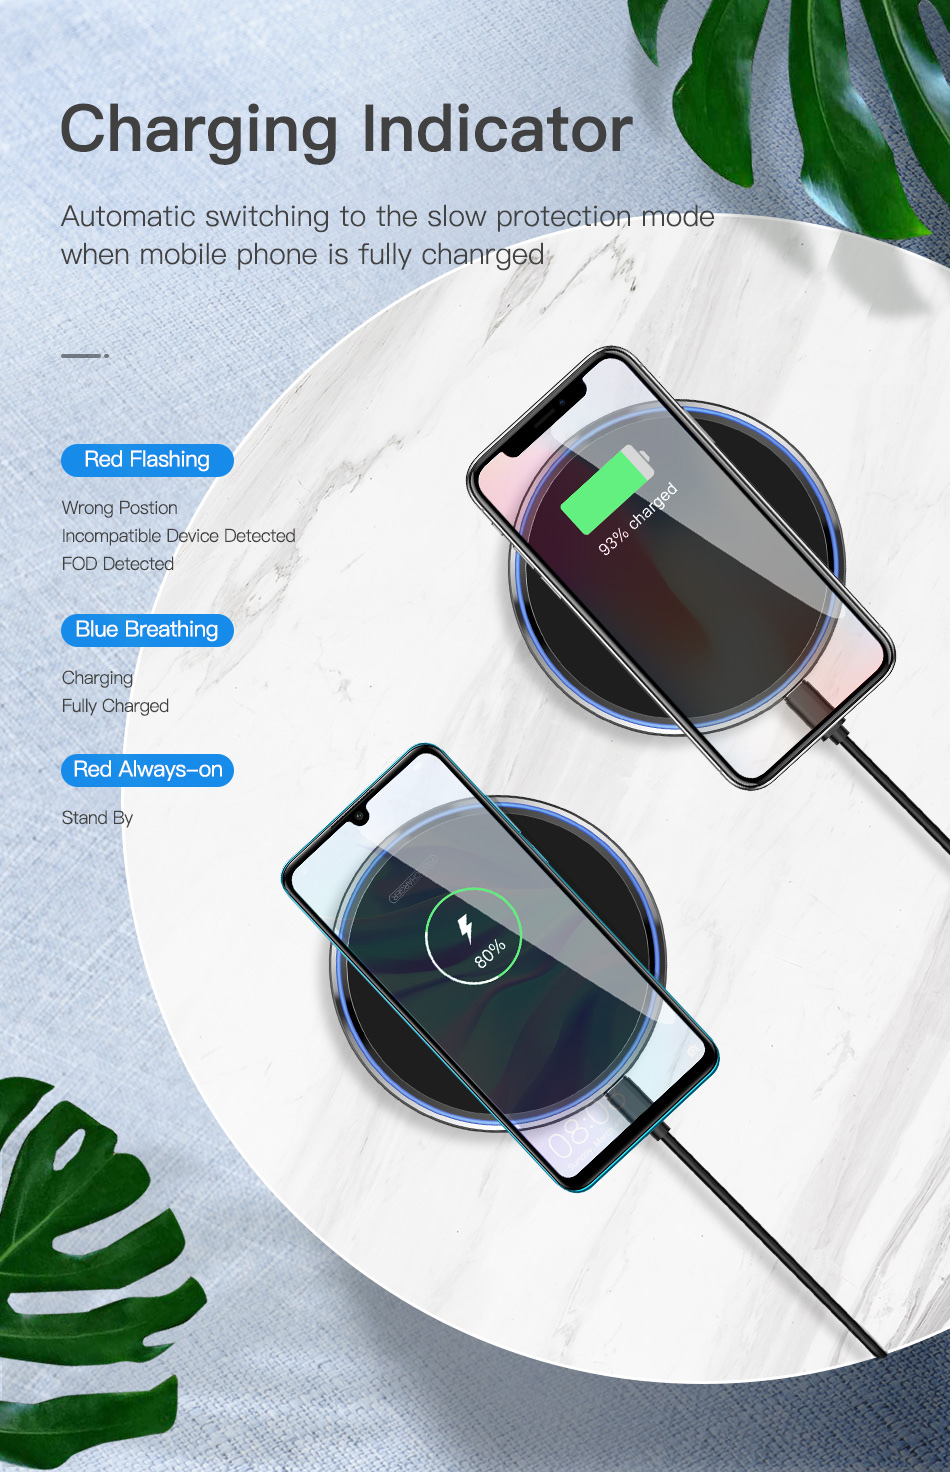 estore kart electronics new arrival mobile accessories Mirror Wireless Charging Pad with charging indiacators